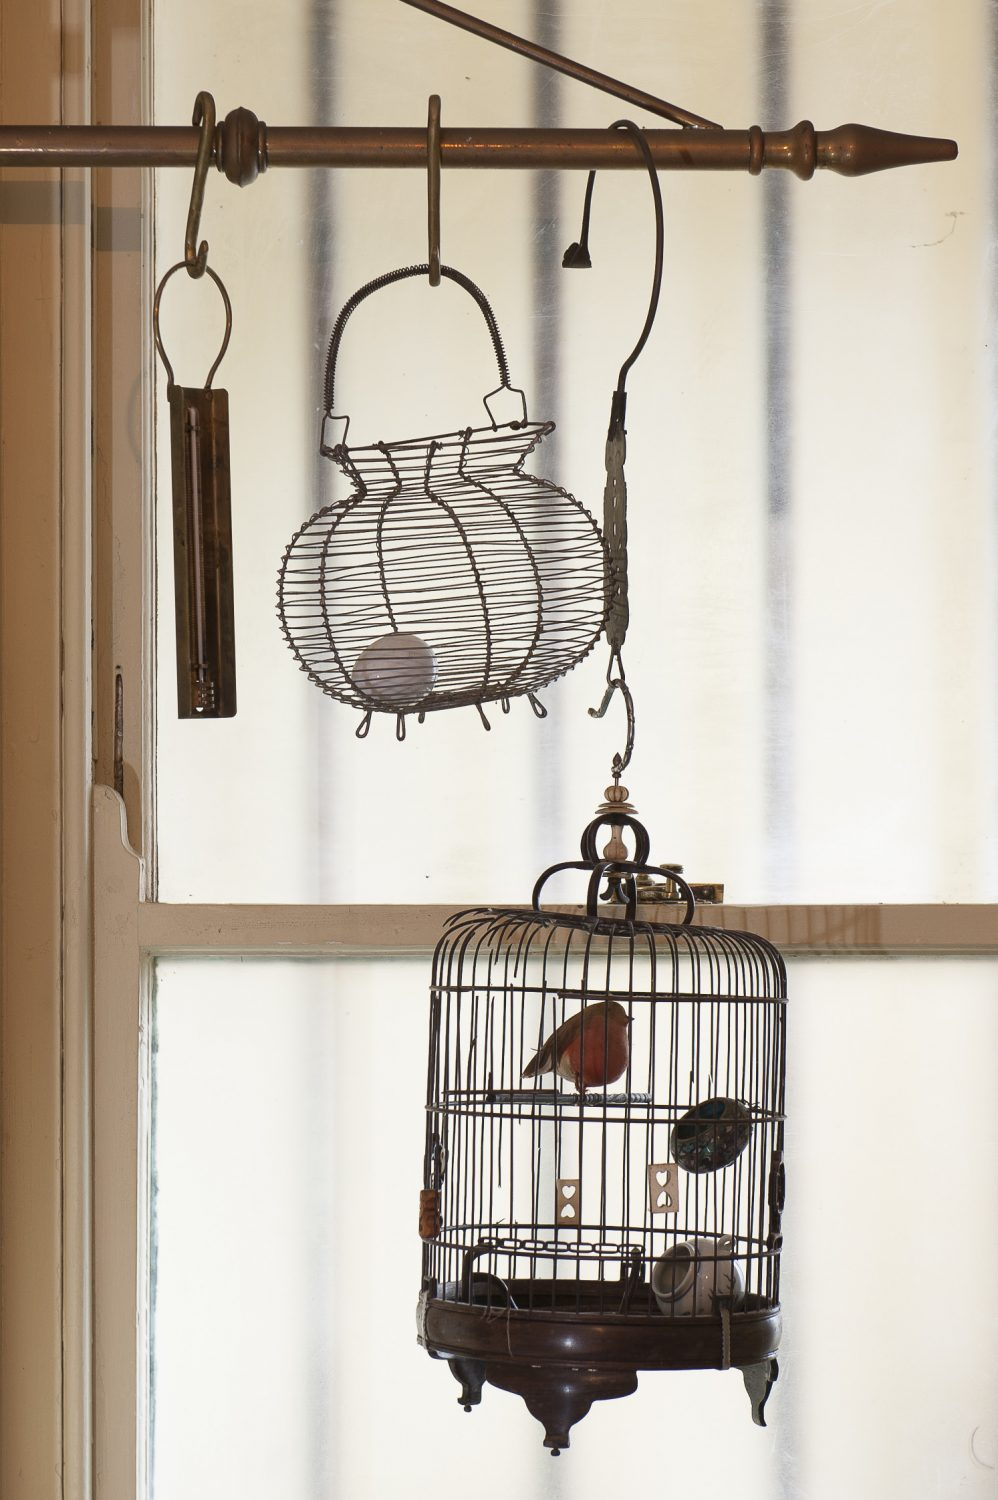 A decorative birdcage hangs in the kitchen